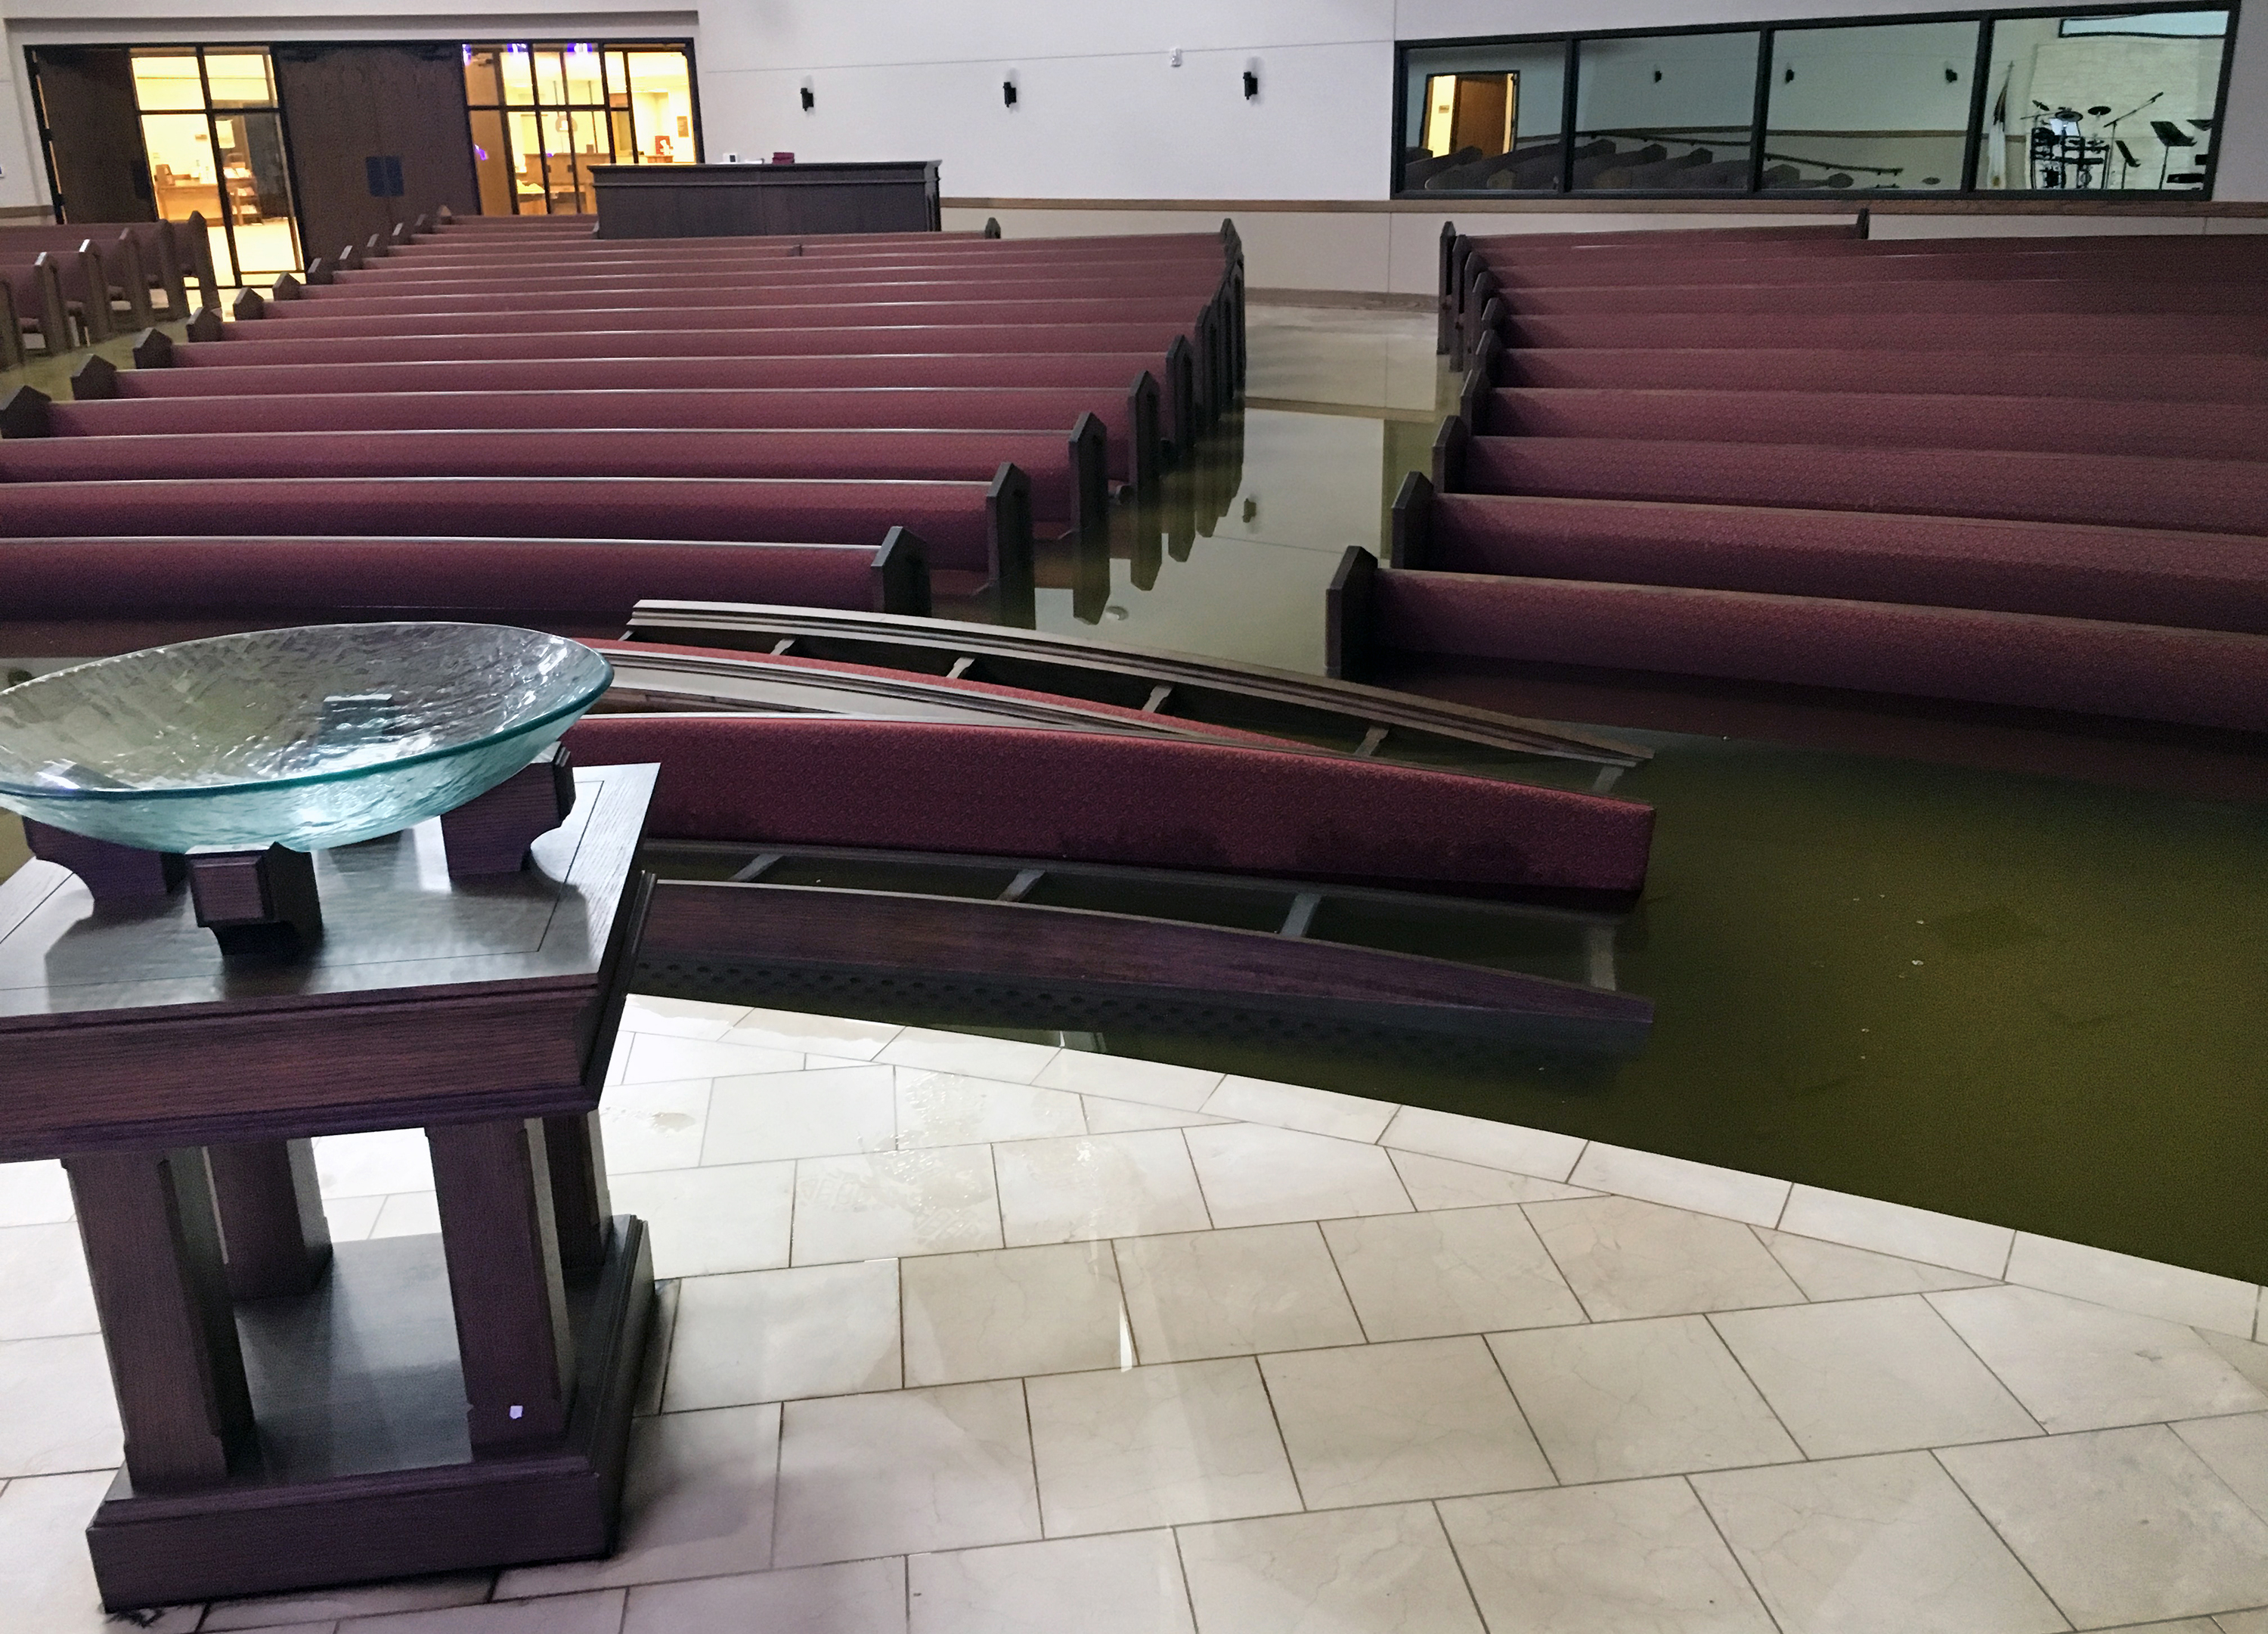 The First United Methodist Church in Dickinson, Texas, had its sanctuary flooded by Tropical Story Harvey. Photo by the Rev. Jack Matkin.